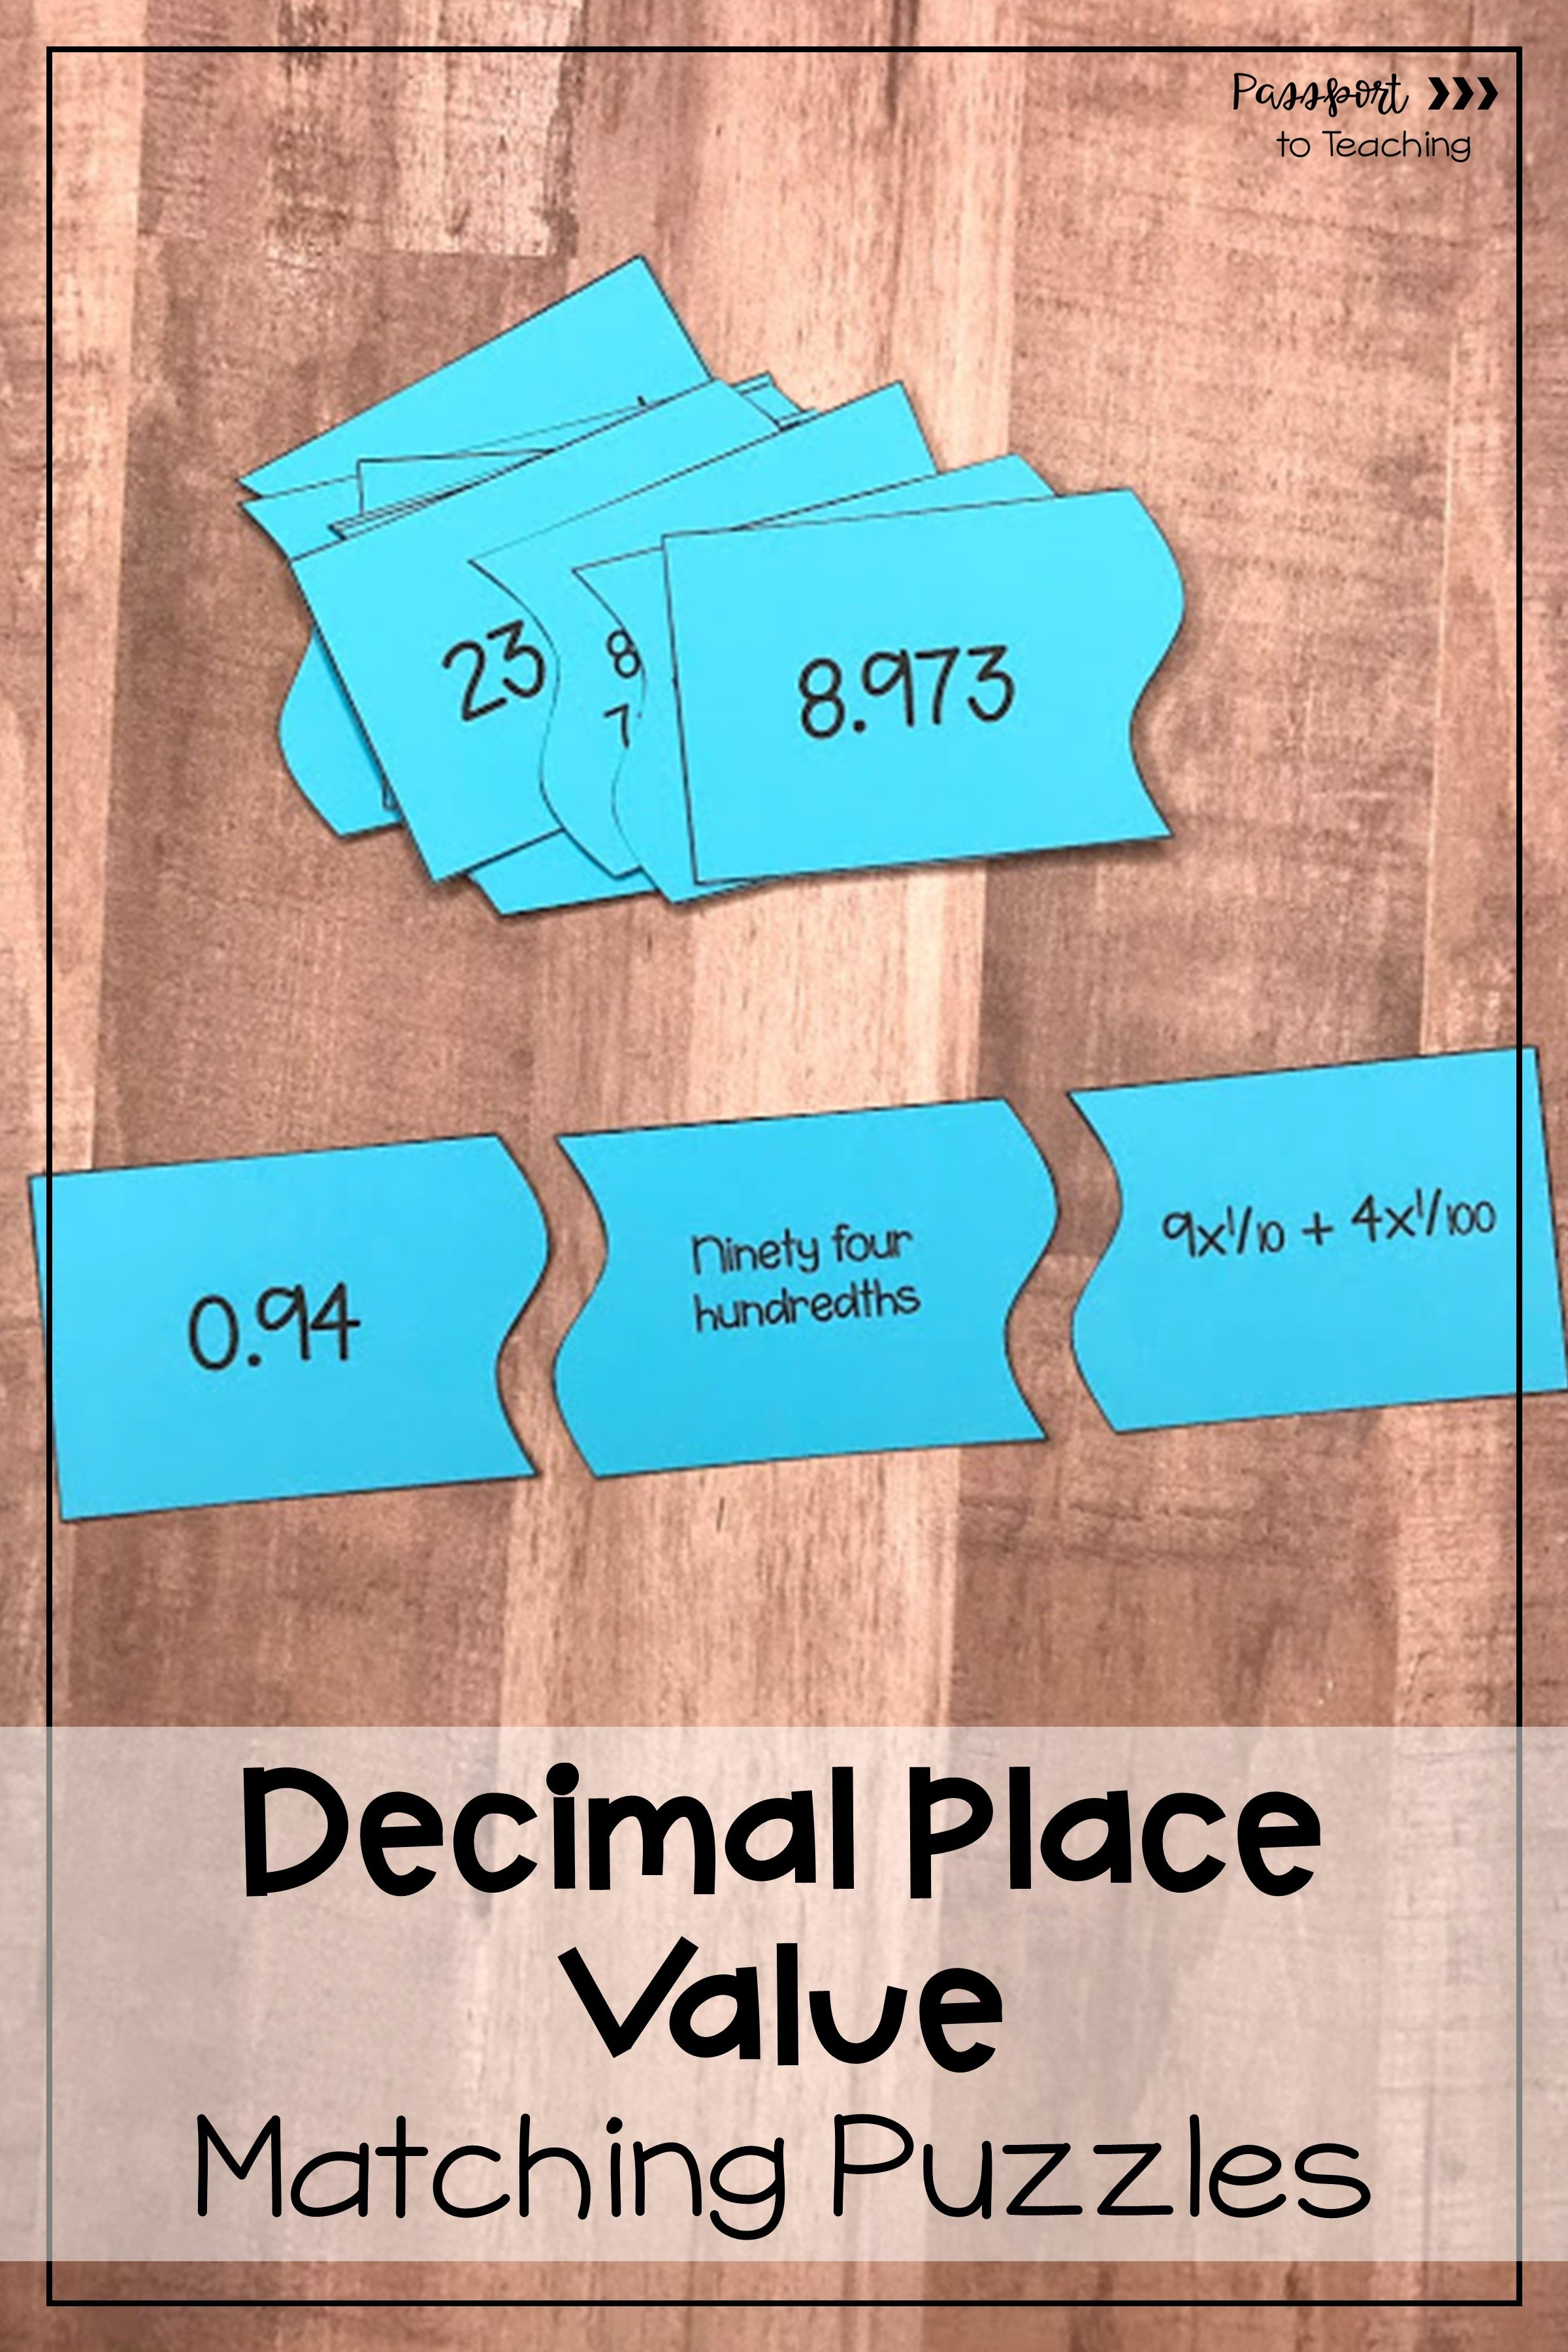 Decimal Place Value Matching Puzzles